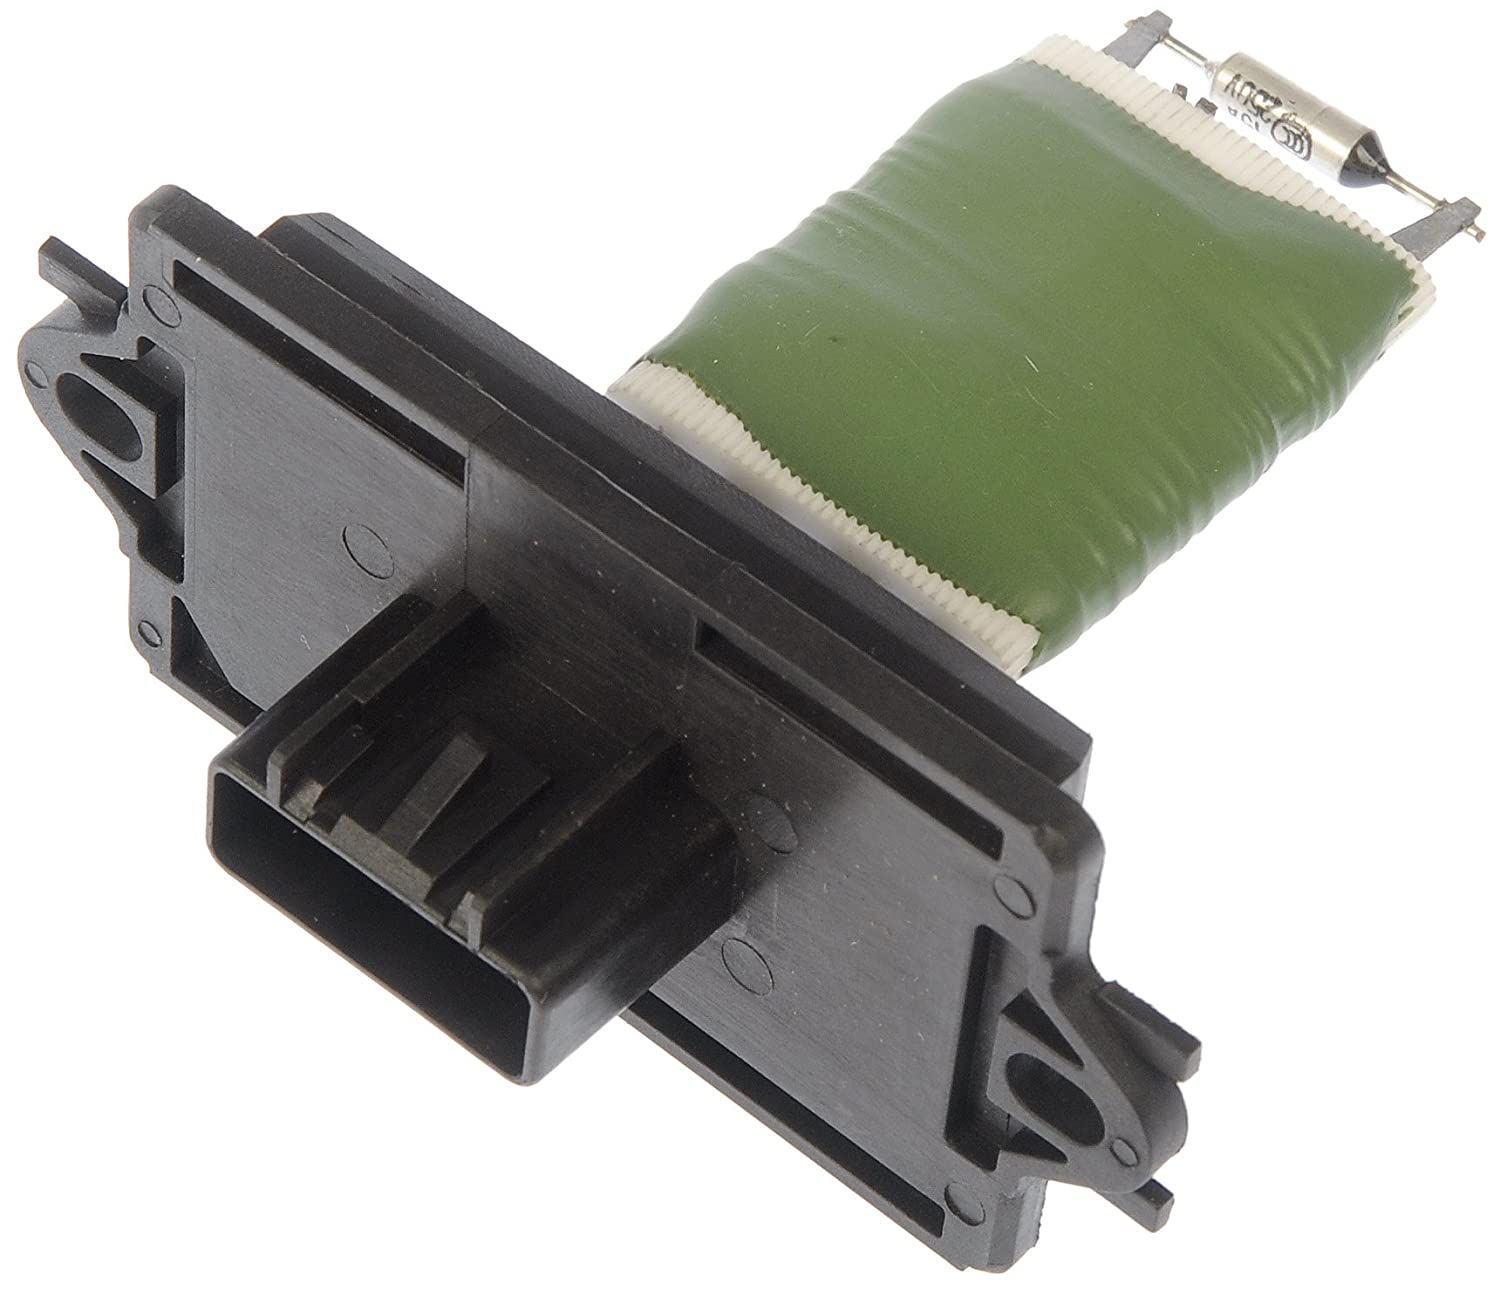 Dorman 973-028 Blower Motor Resistor for Jeep Commander/Grand Cherokee Dorman - TECHoice